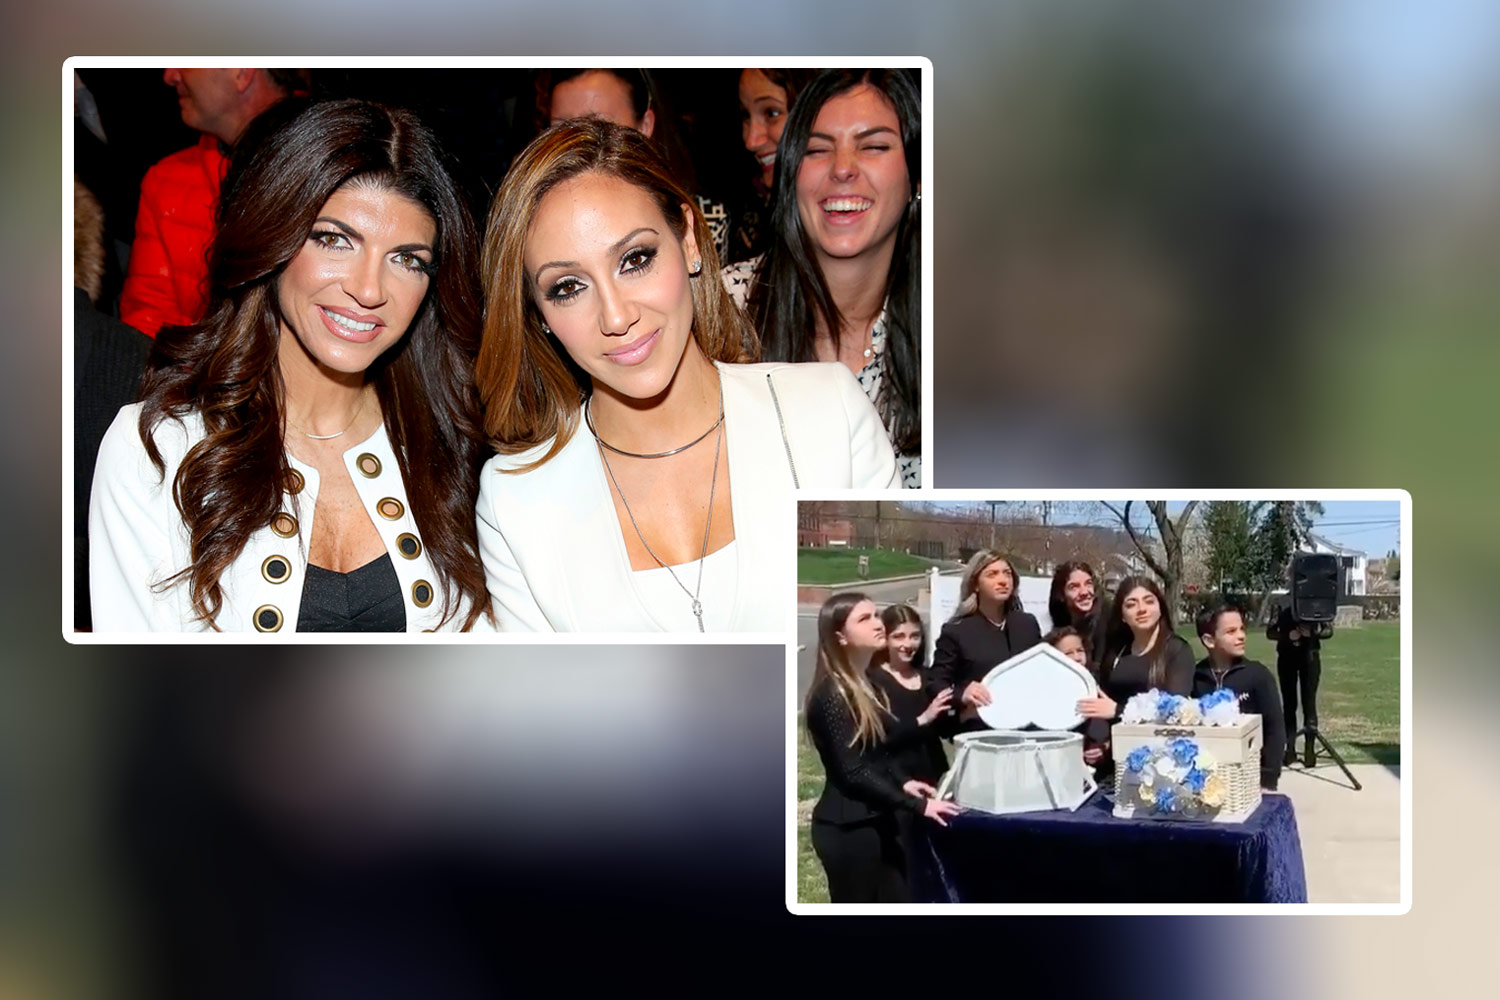 Giancito Gorga Memorial Teresa Giudice